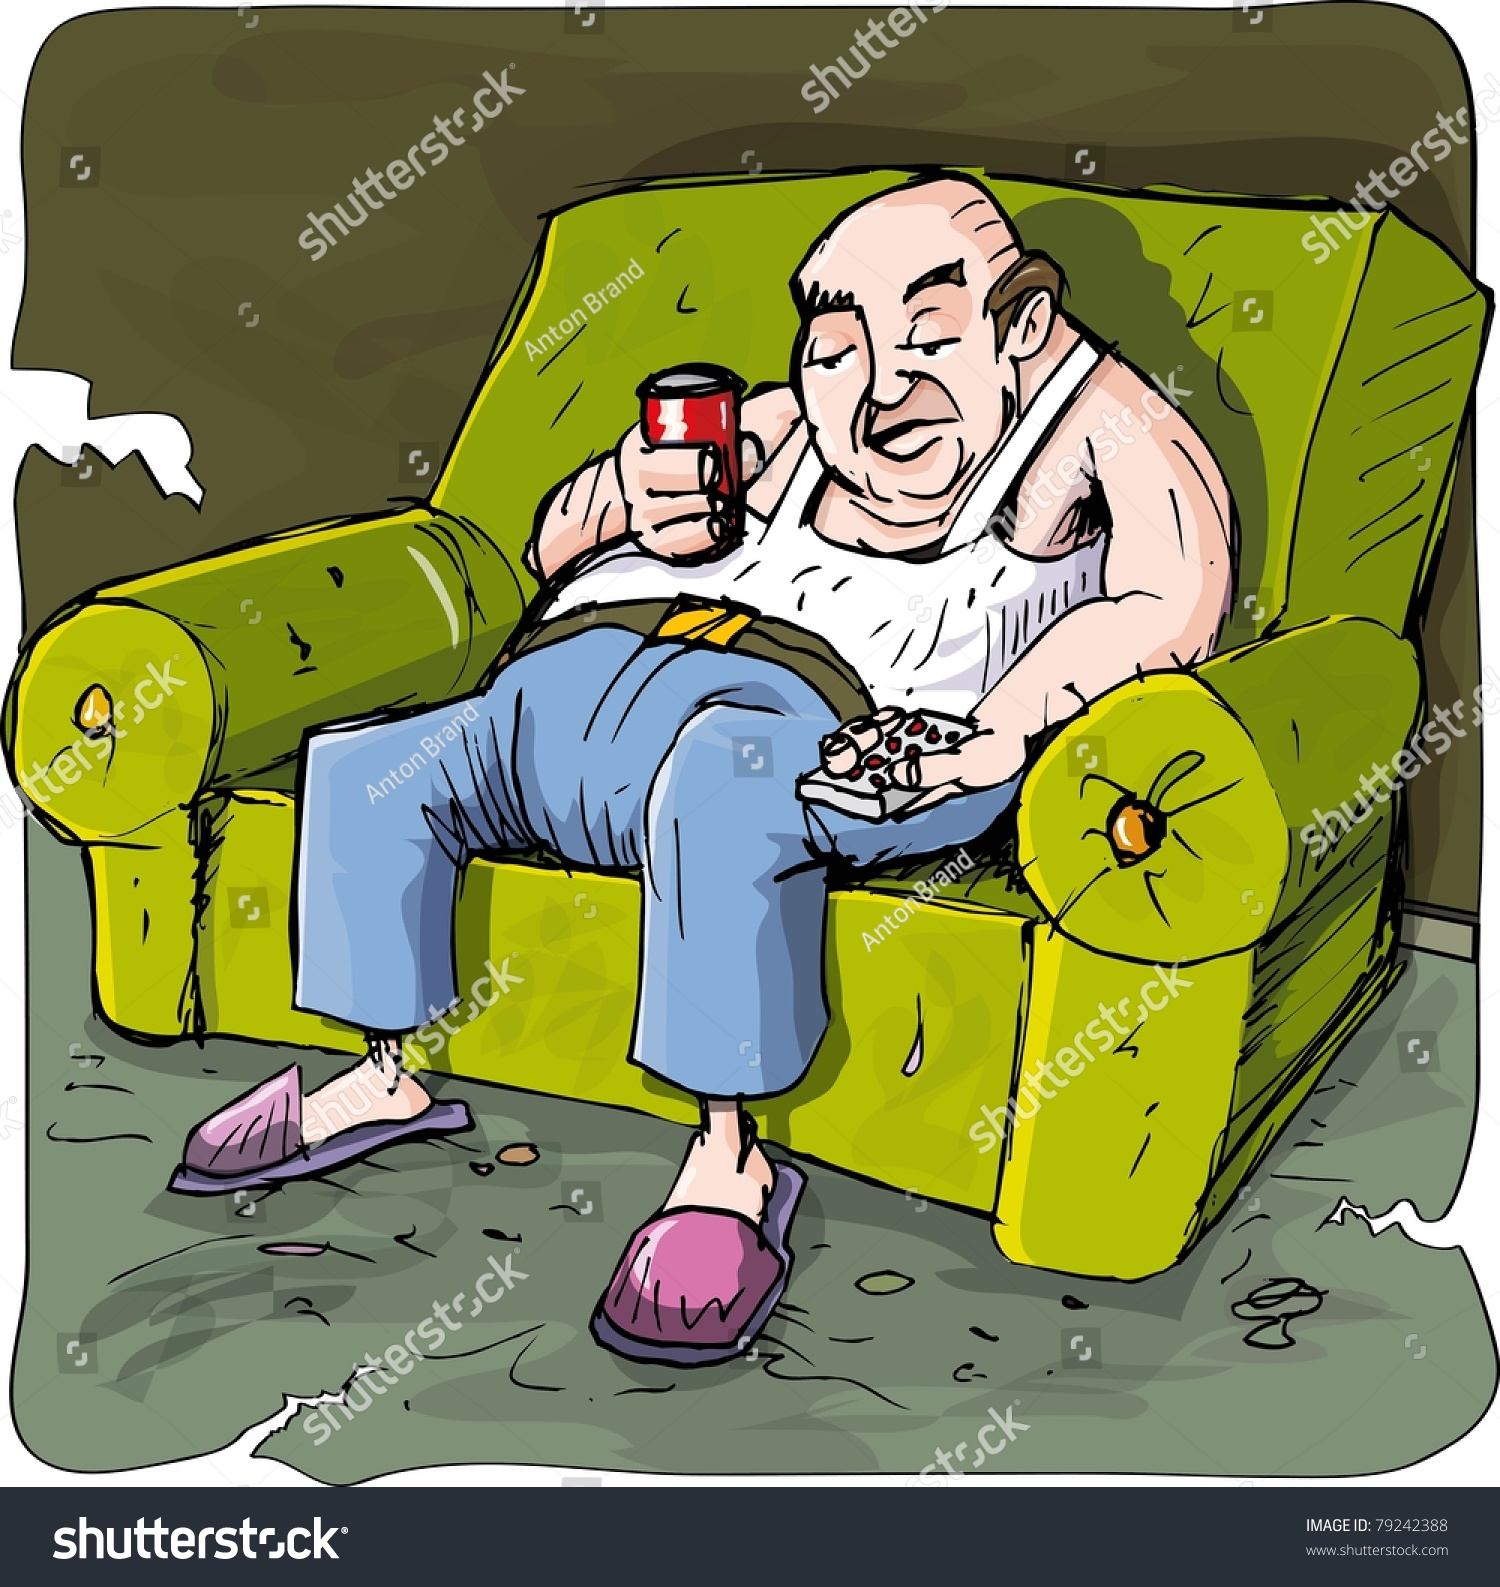 Lazy Person On Couch Cartoon Image Gallery lazy per...